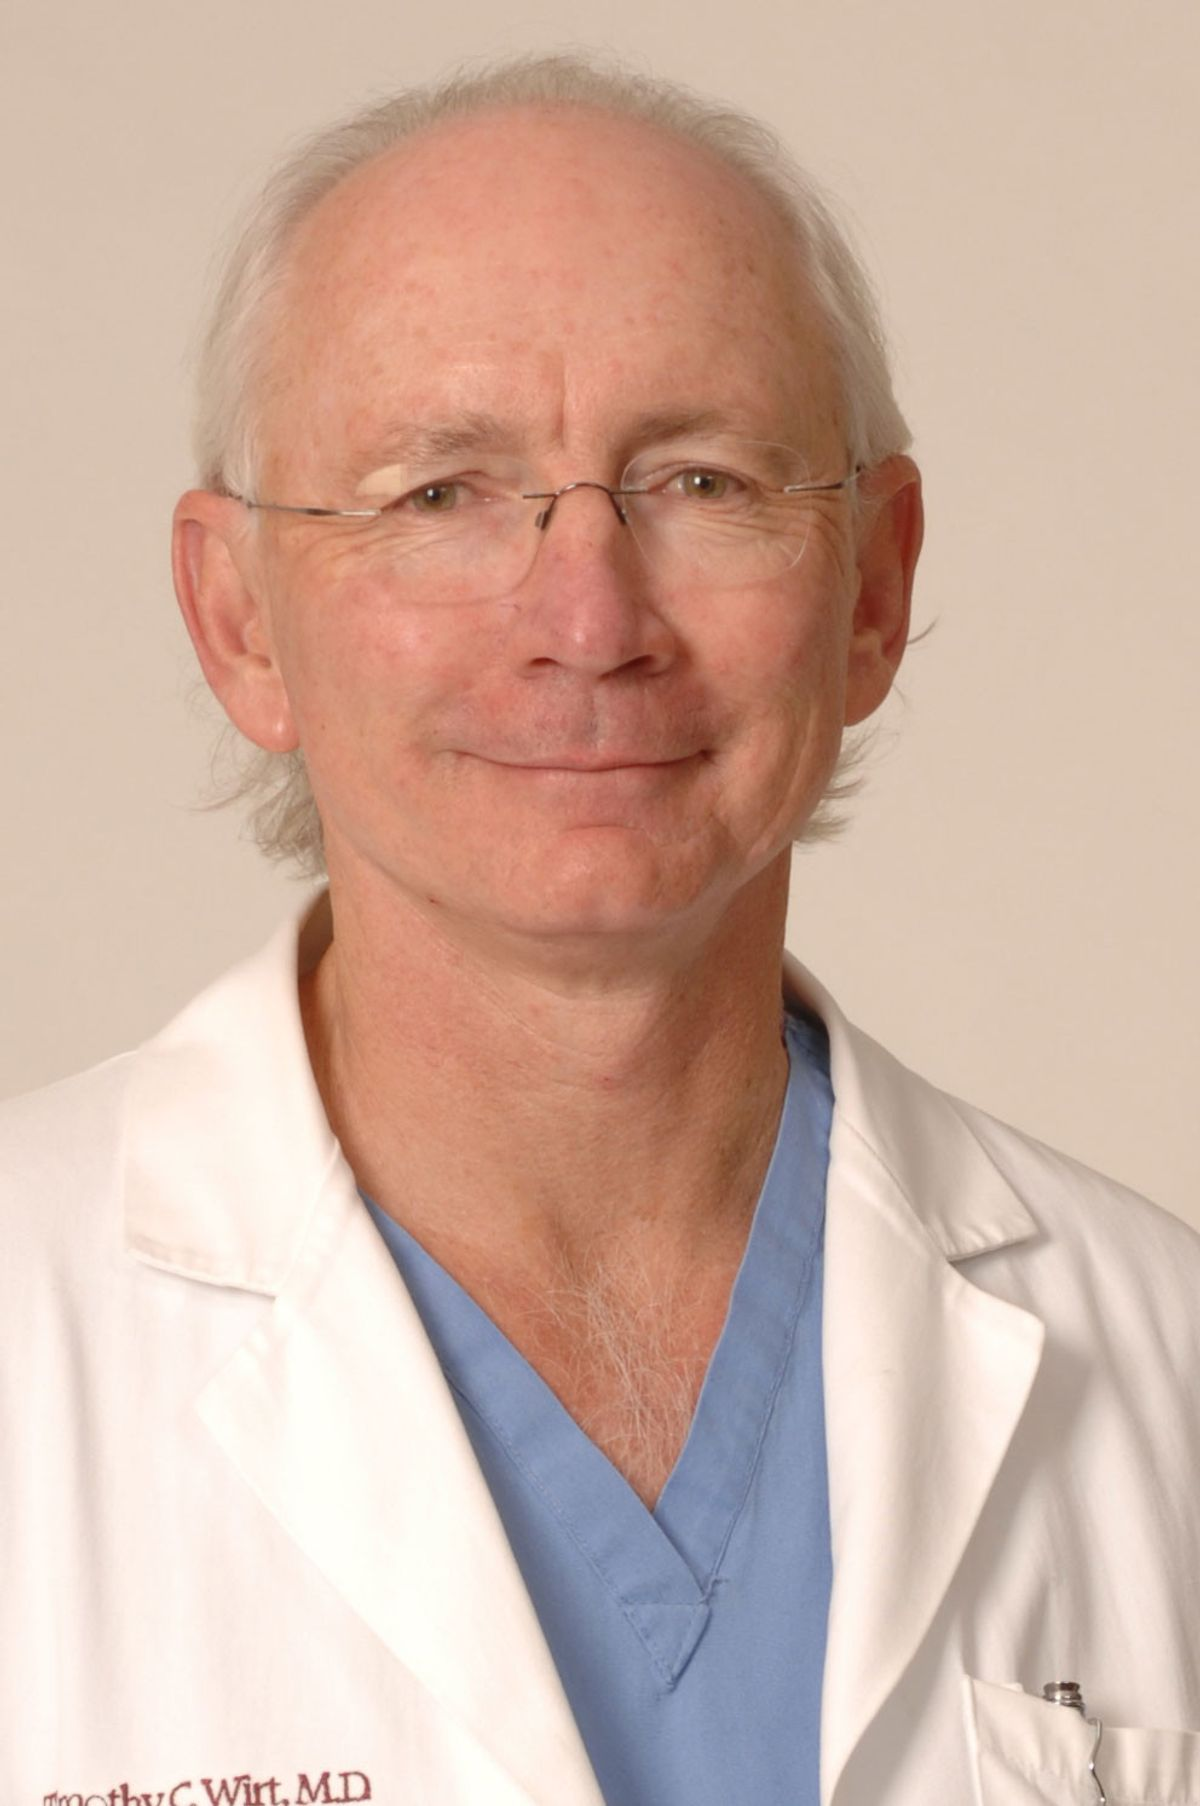 Dr Timothy Wirt MD Neurosurgeon Fort Collins CO 80524